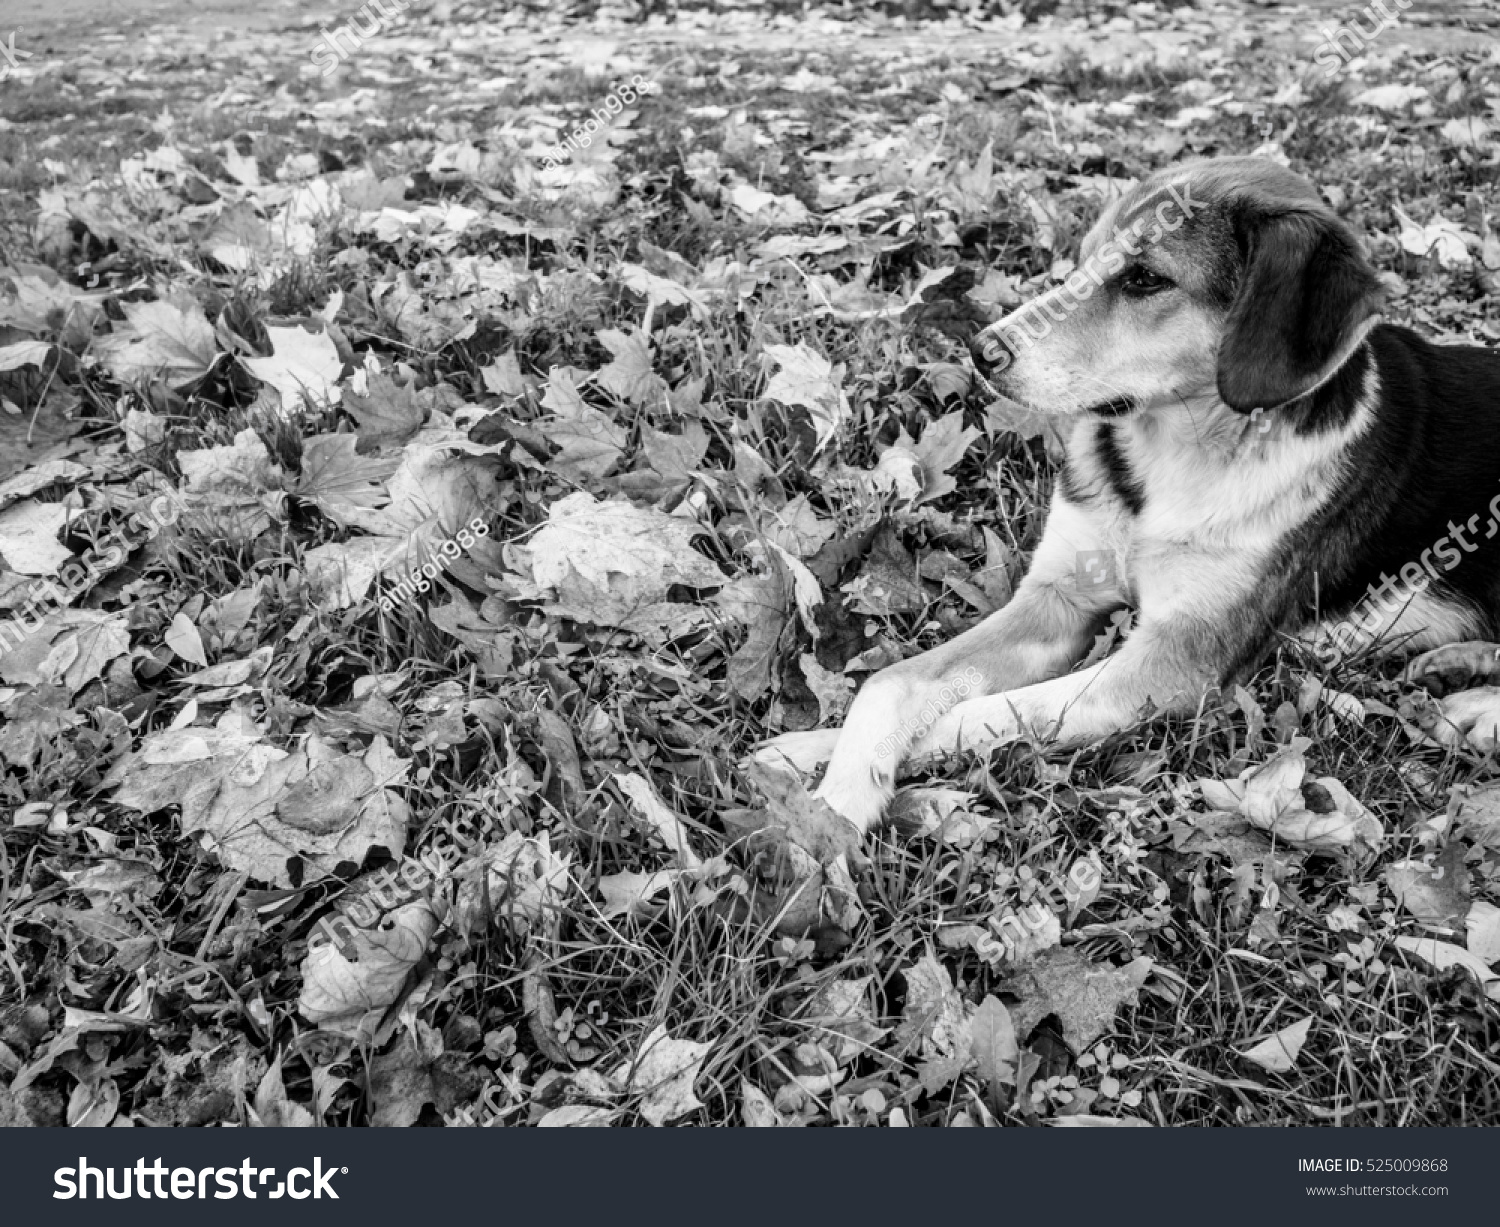 stock-photo-spotted-dog-lying-with-crossed-legs-in-the-fallen-leaves-black-and-white-525009868